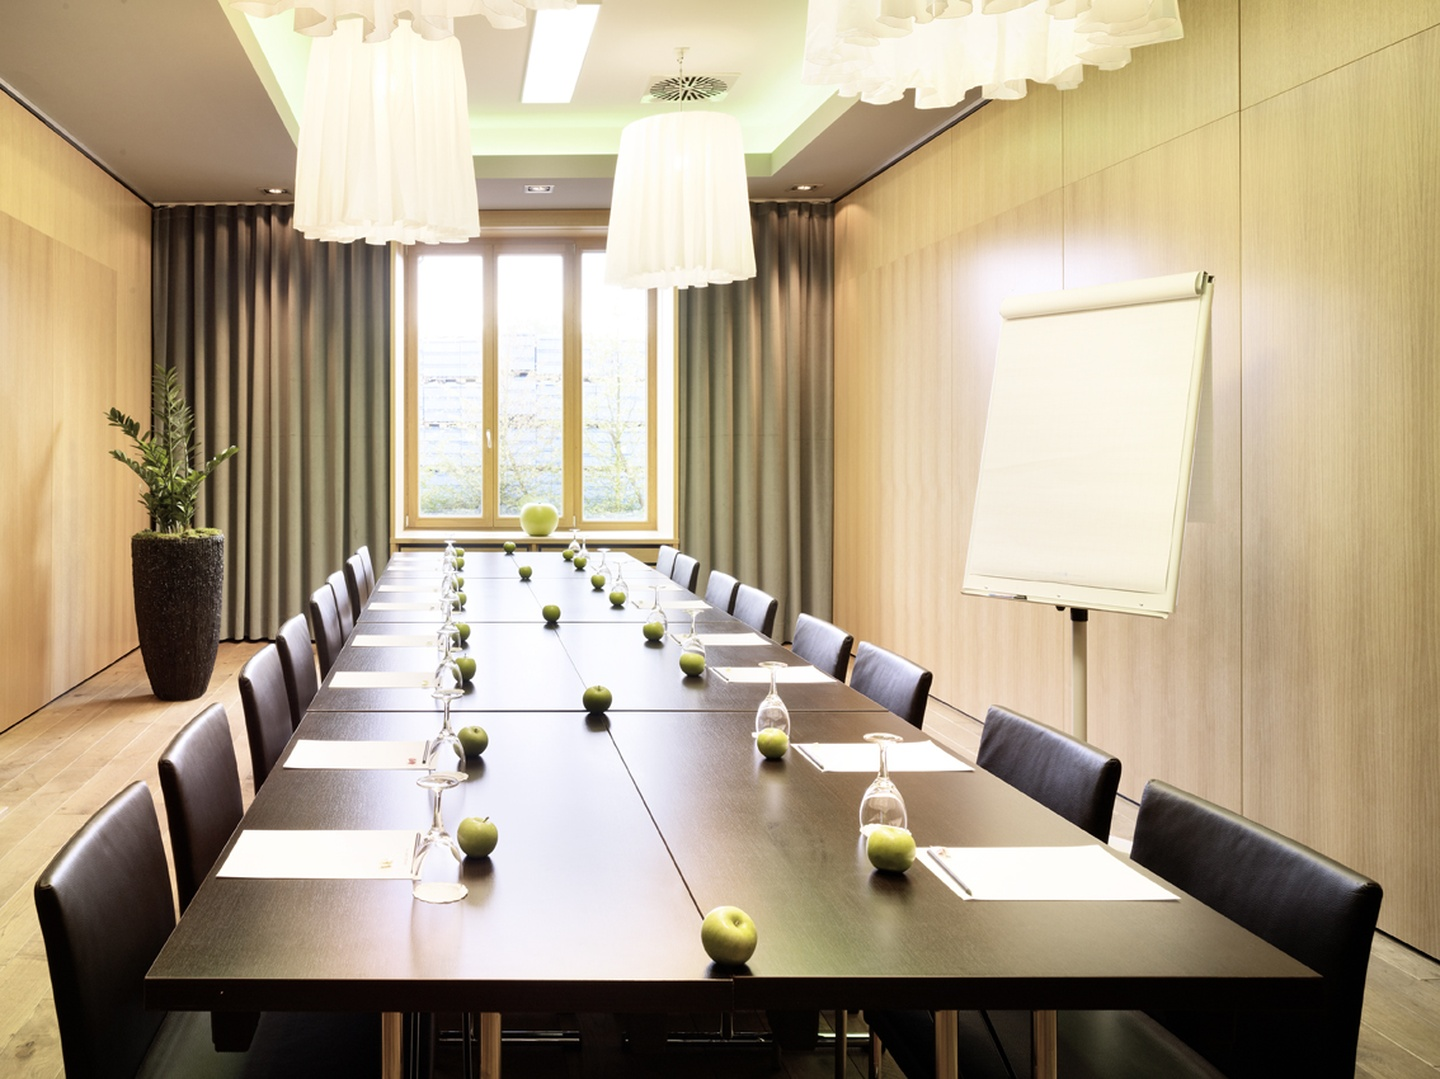 Cologne conference rooms Salle de réunion The New Yorker   FACTORY III image 0